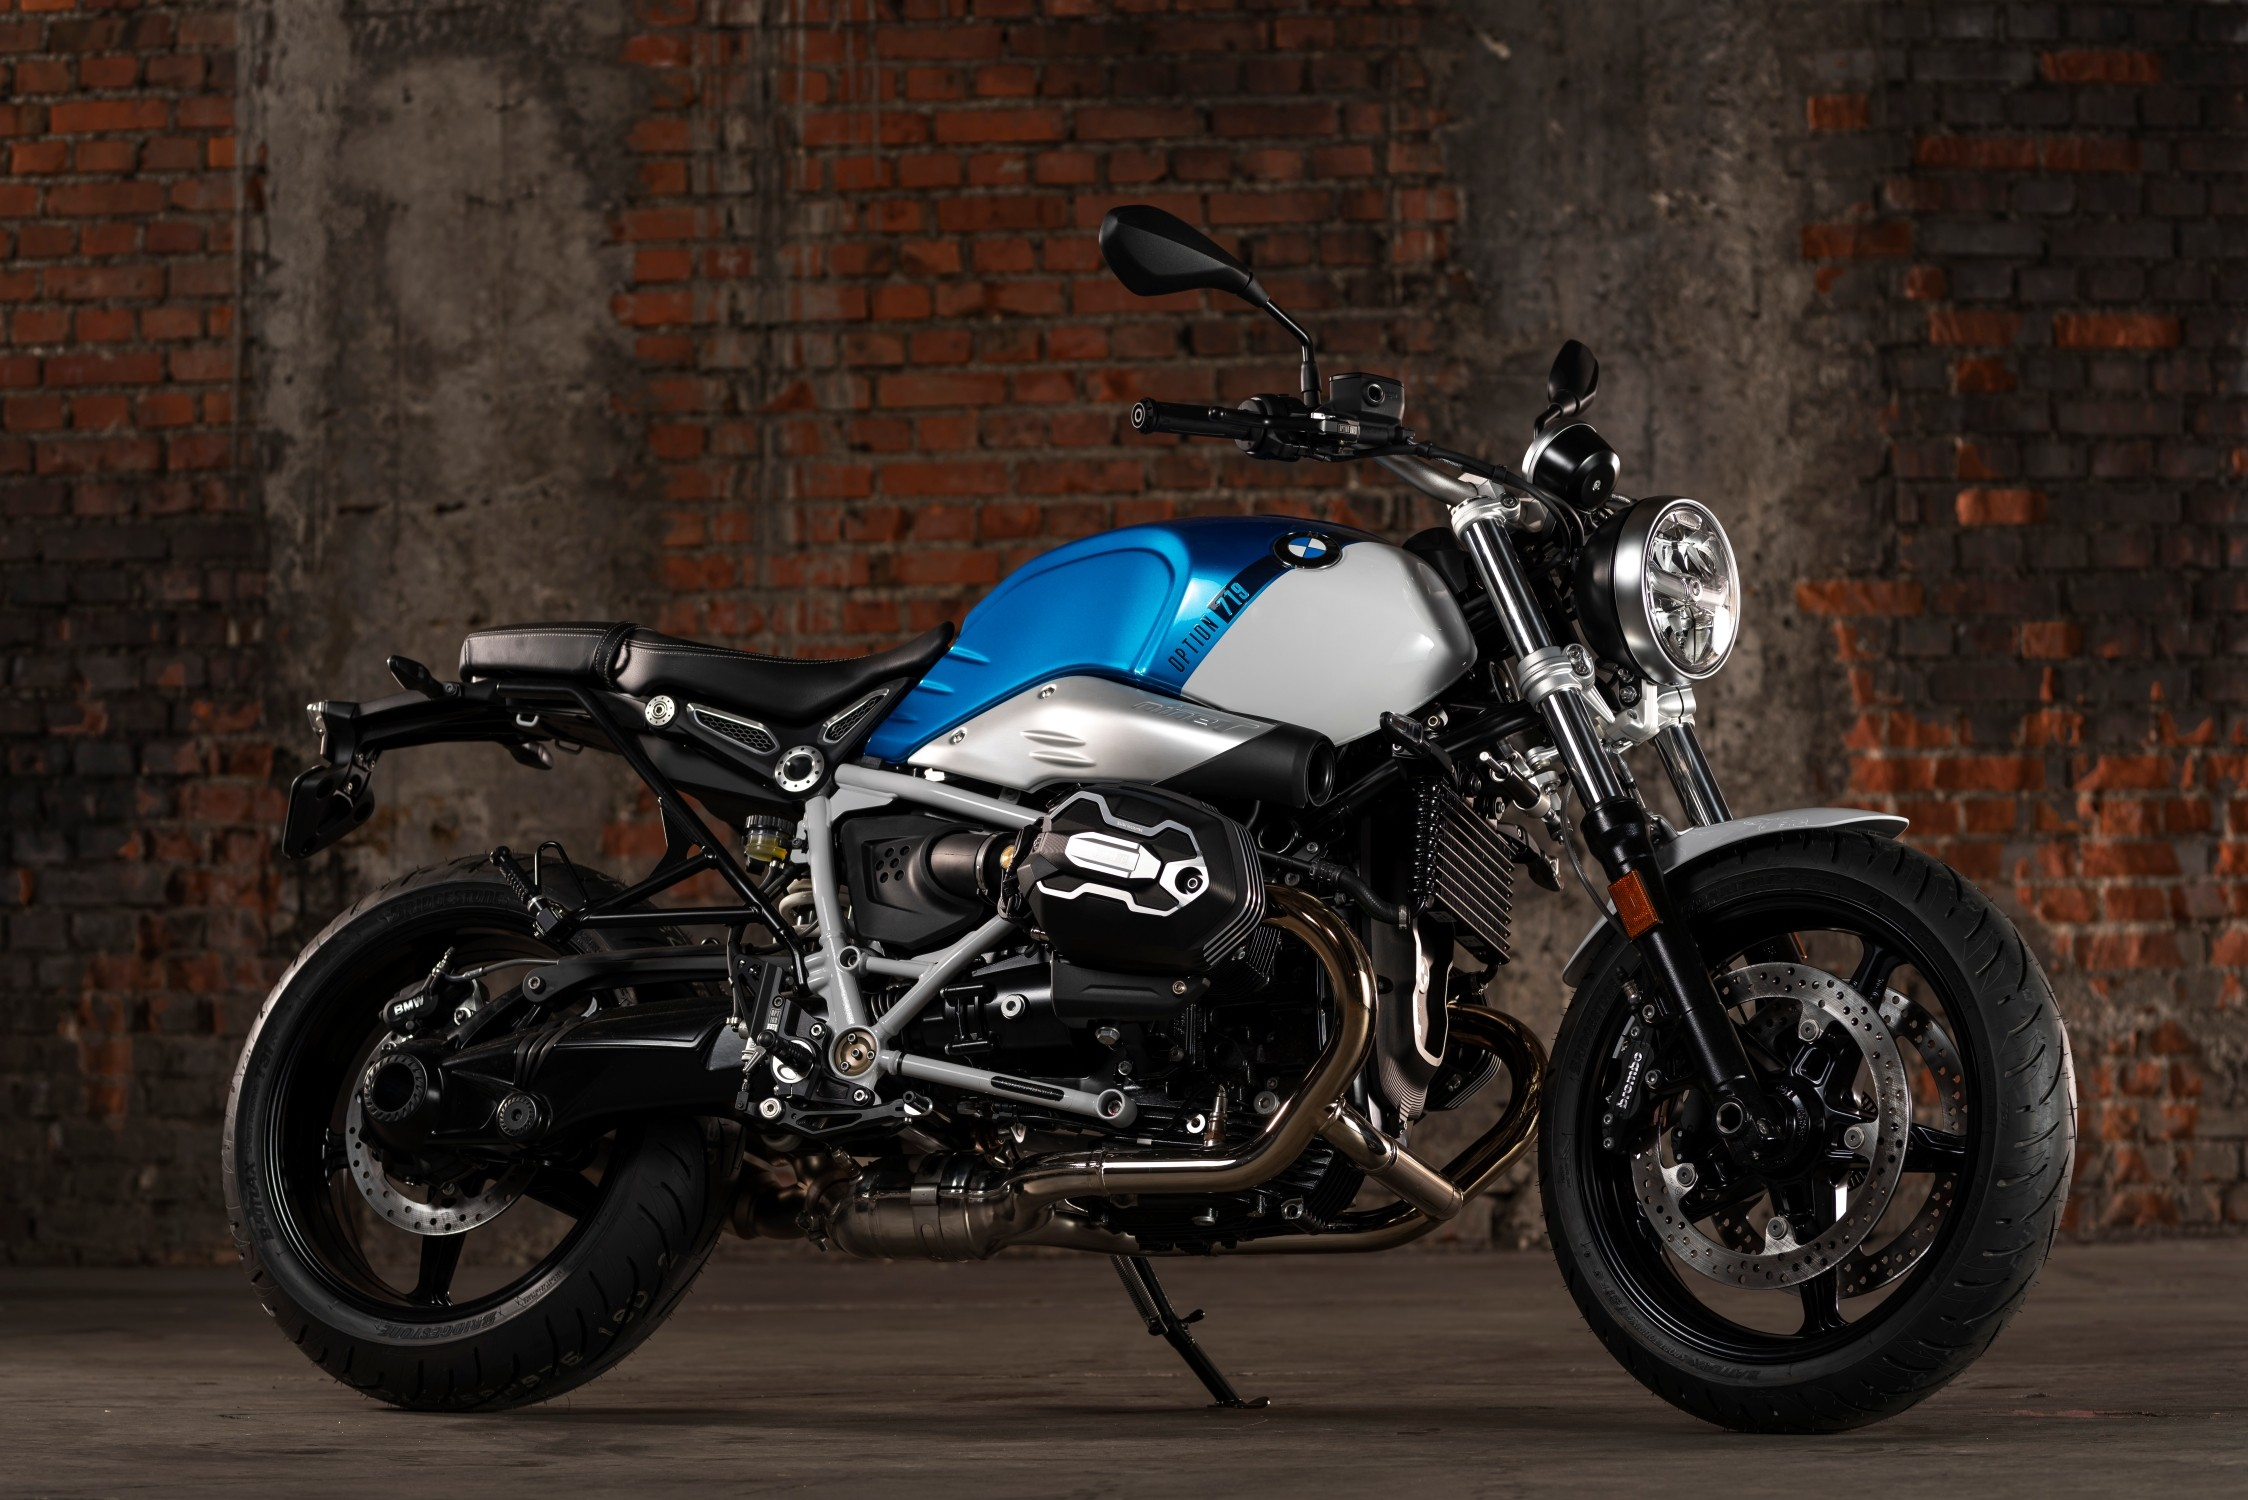 The BMW R nineT Pure